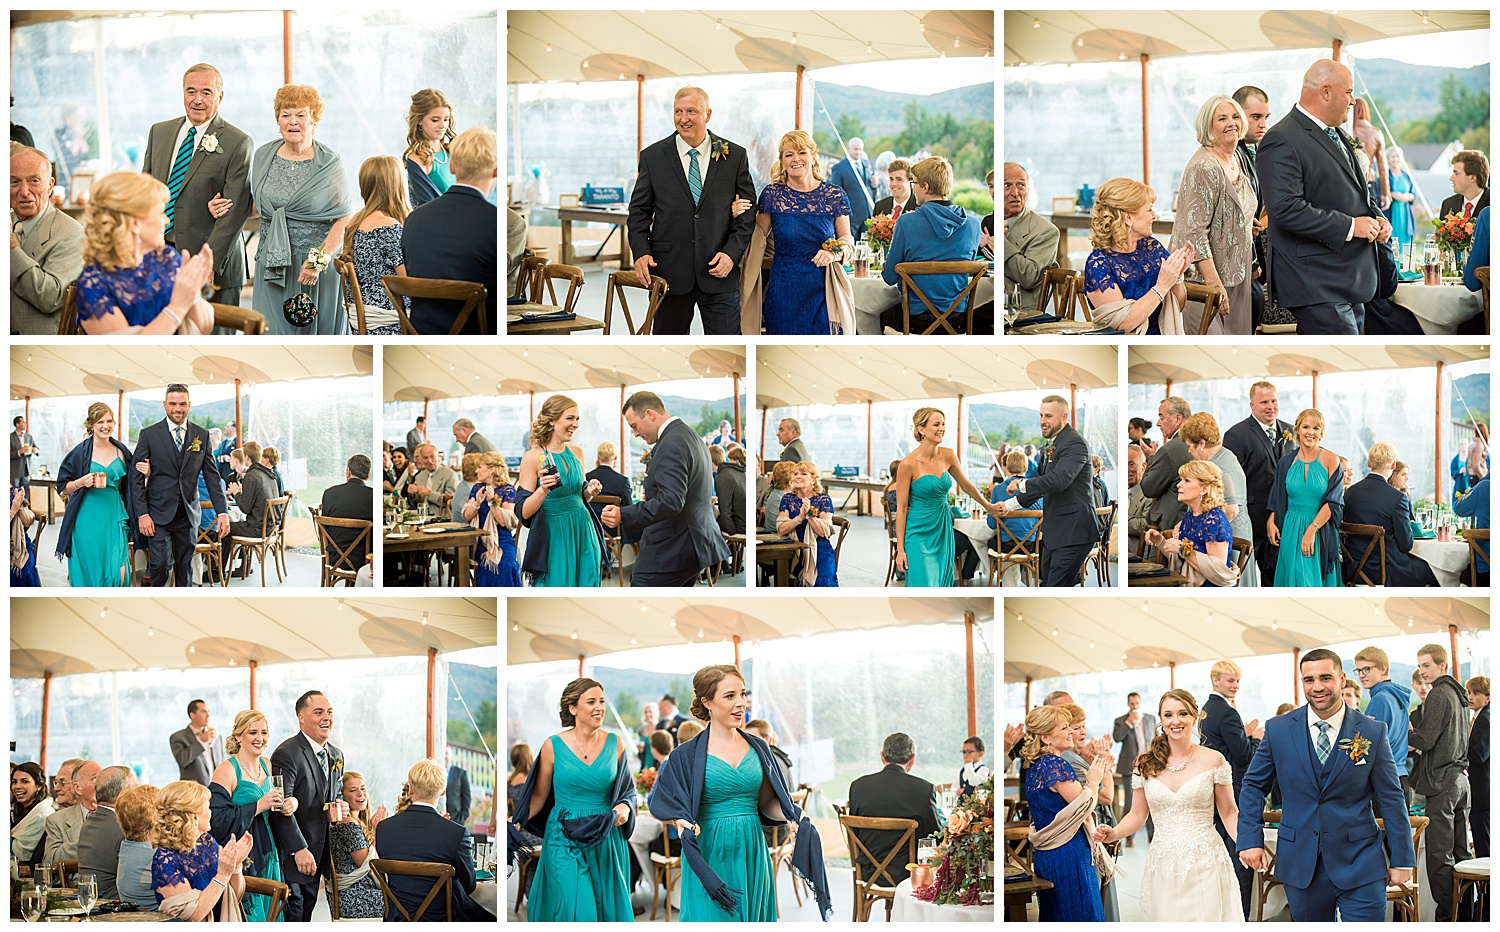 Owl's Nest White Mountain Wedding - Reception Photos